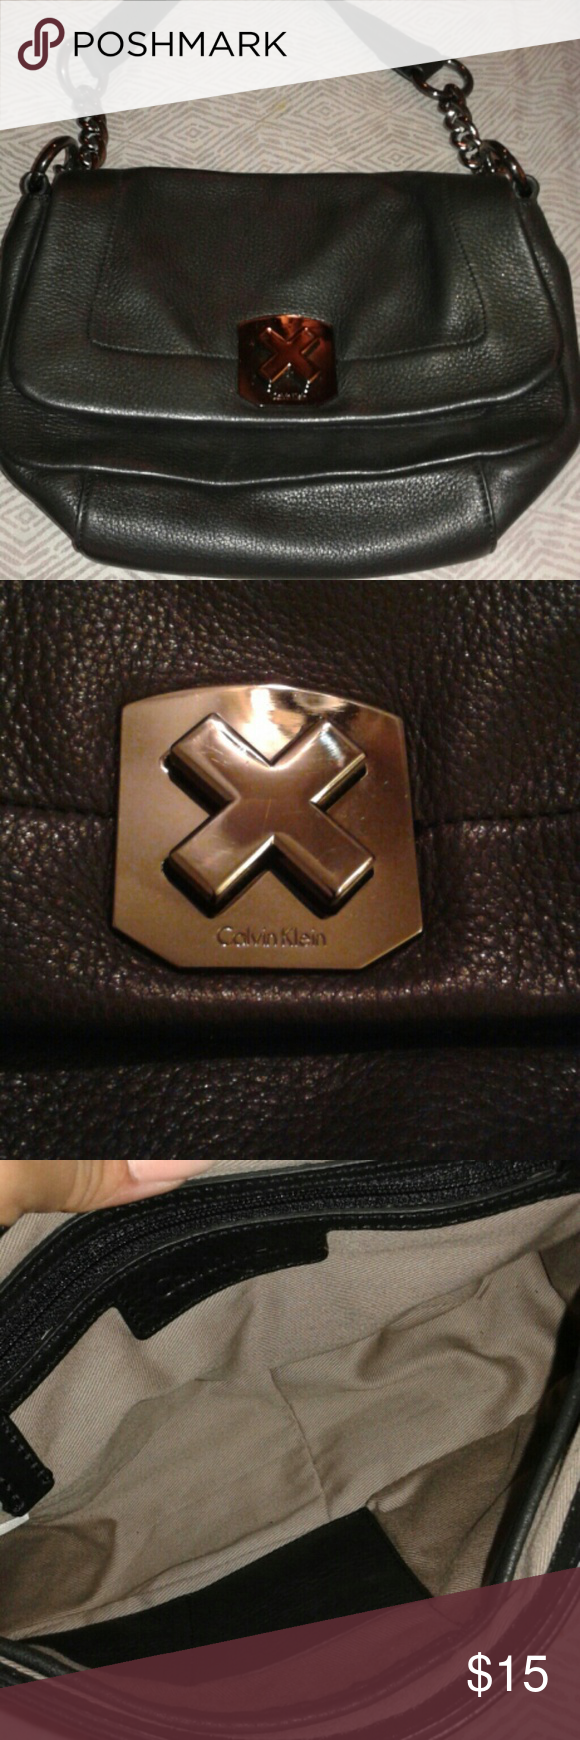 Calvin Klein bag Small purse.  Heavy due to chained sides.  Hardly used clean interior. Calvin Klein Bags Mini Bags